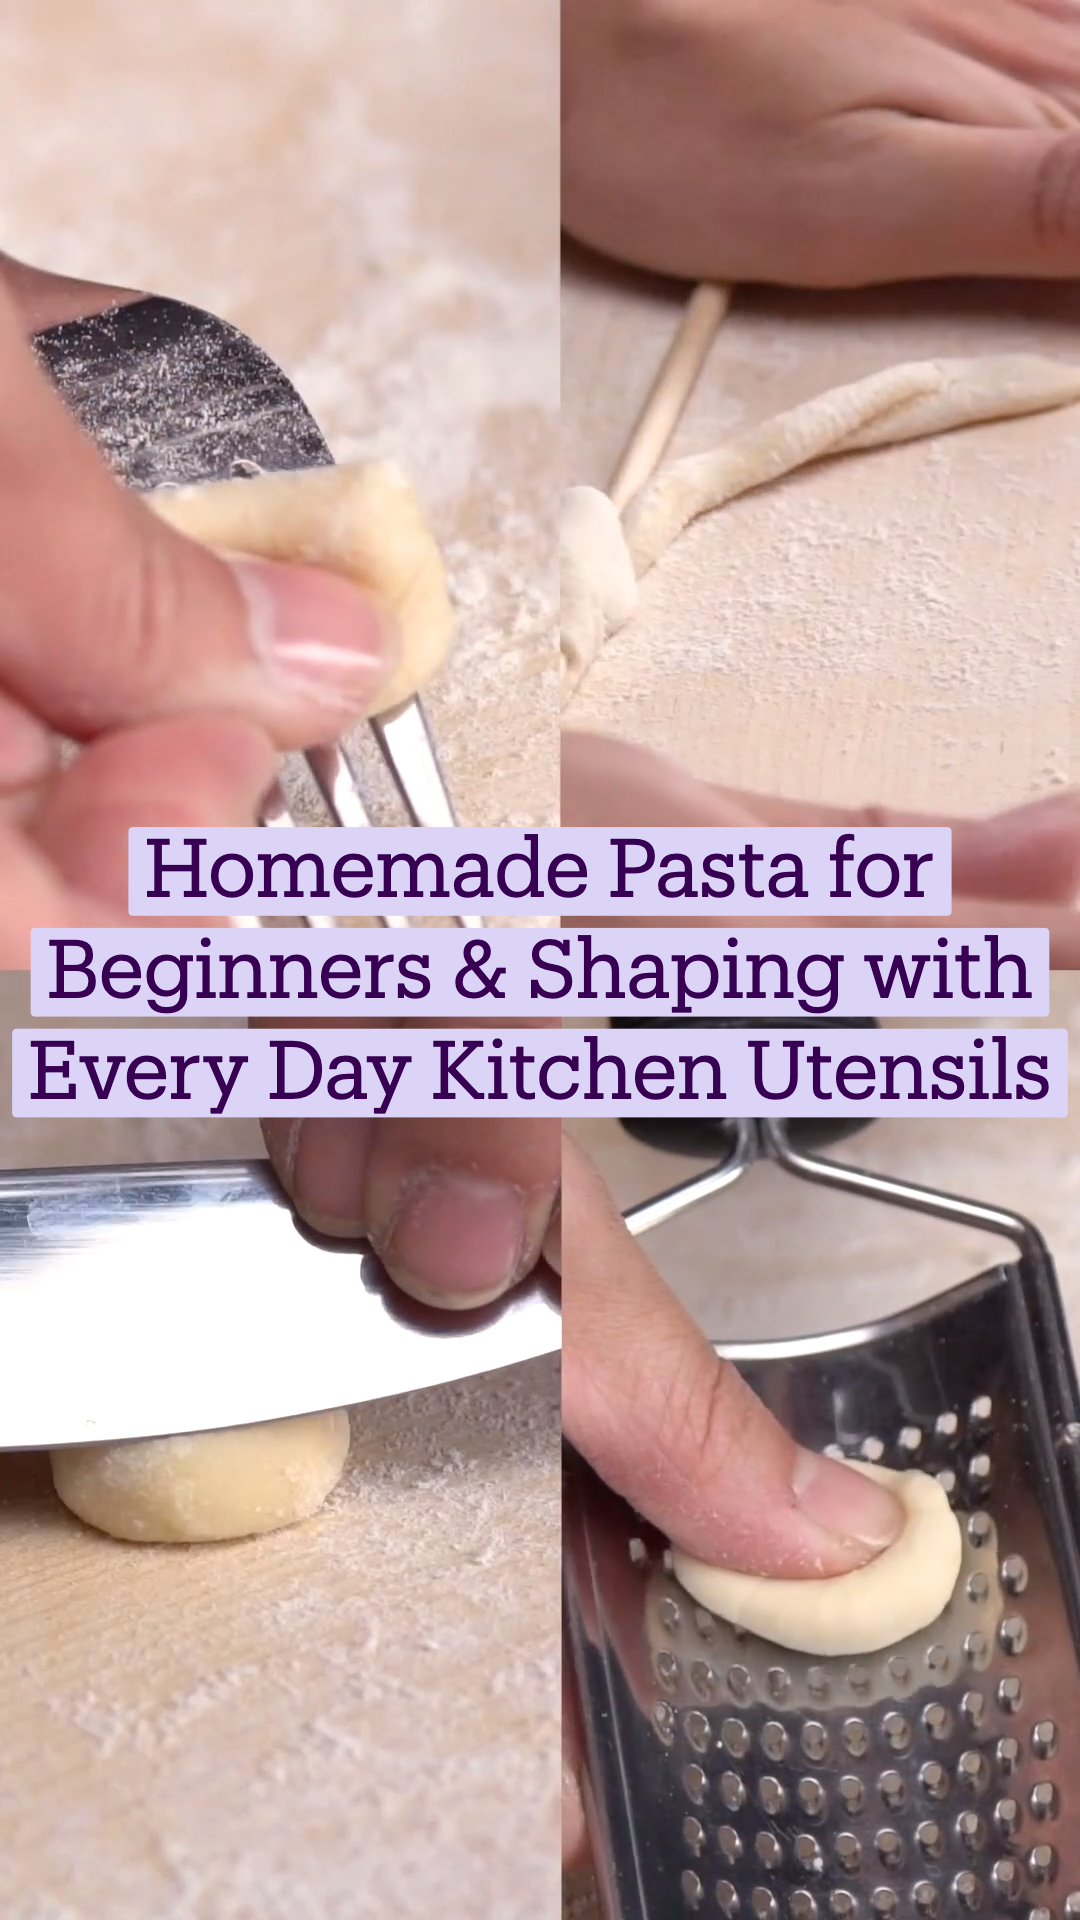 Homemade Pasta for Beginners & Shaping with Every Day Kitchen Utensils